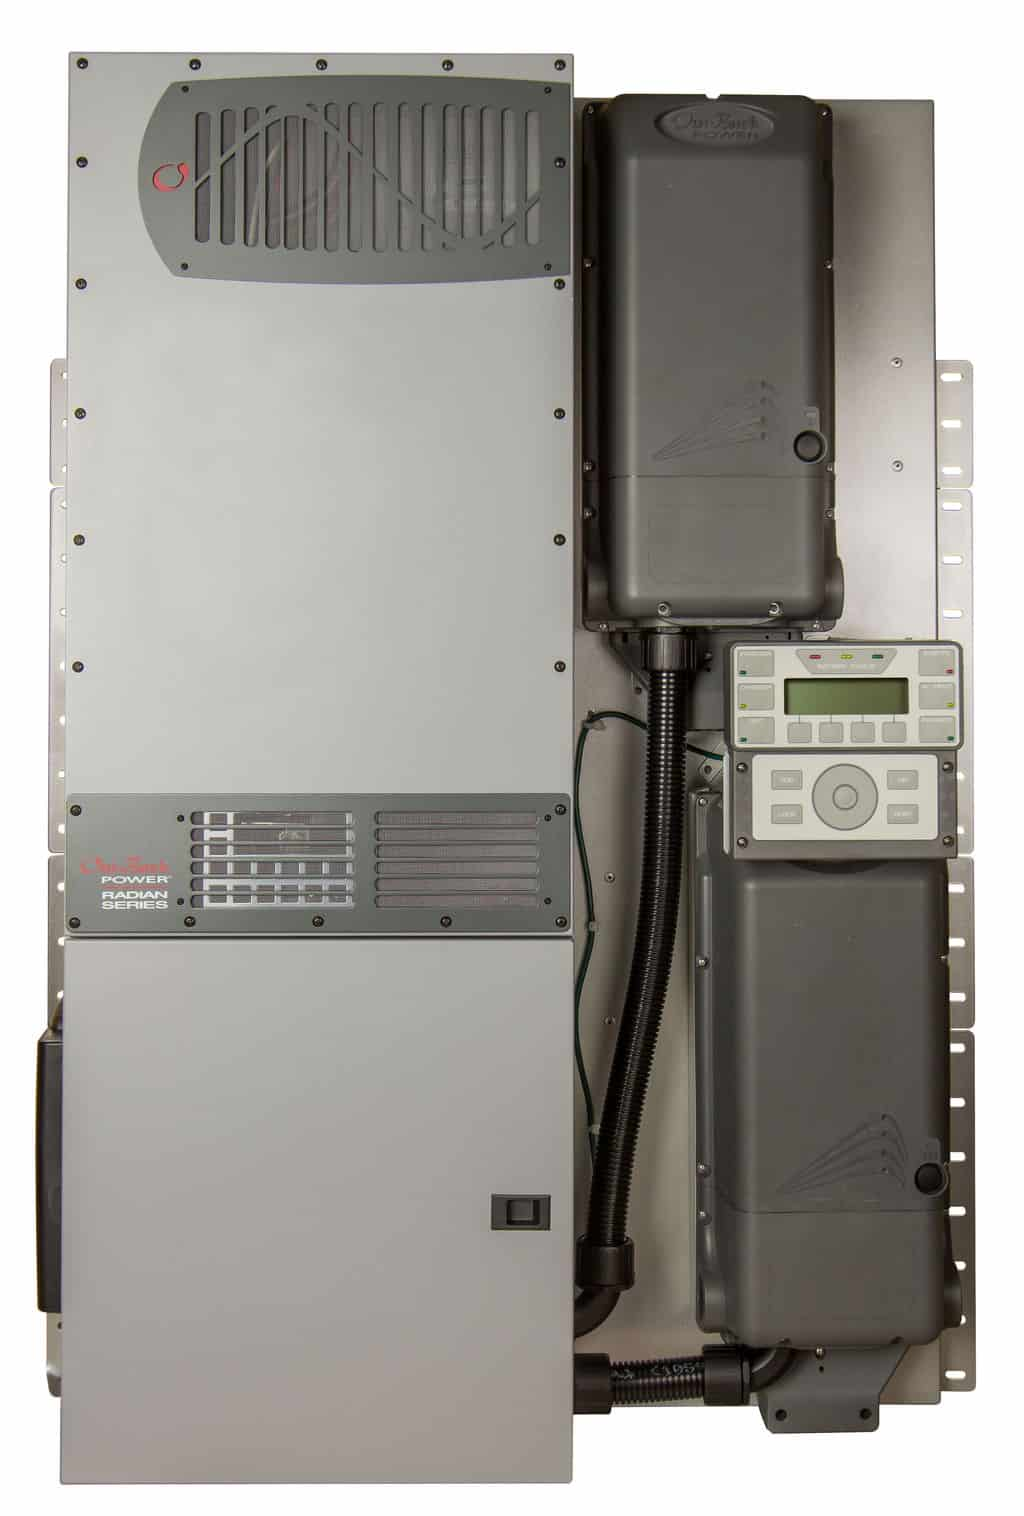 OutBack Power Systems: Outback, FLEXpower Radian, GS4048A-01, 4.0kW, 120/240Vac, Prewired  GSLC, with 120/240 AC bypass